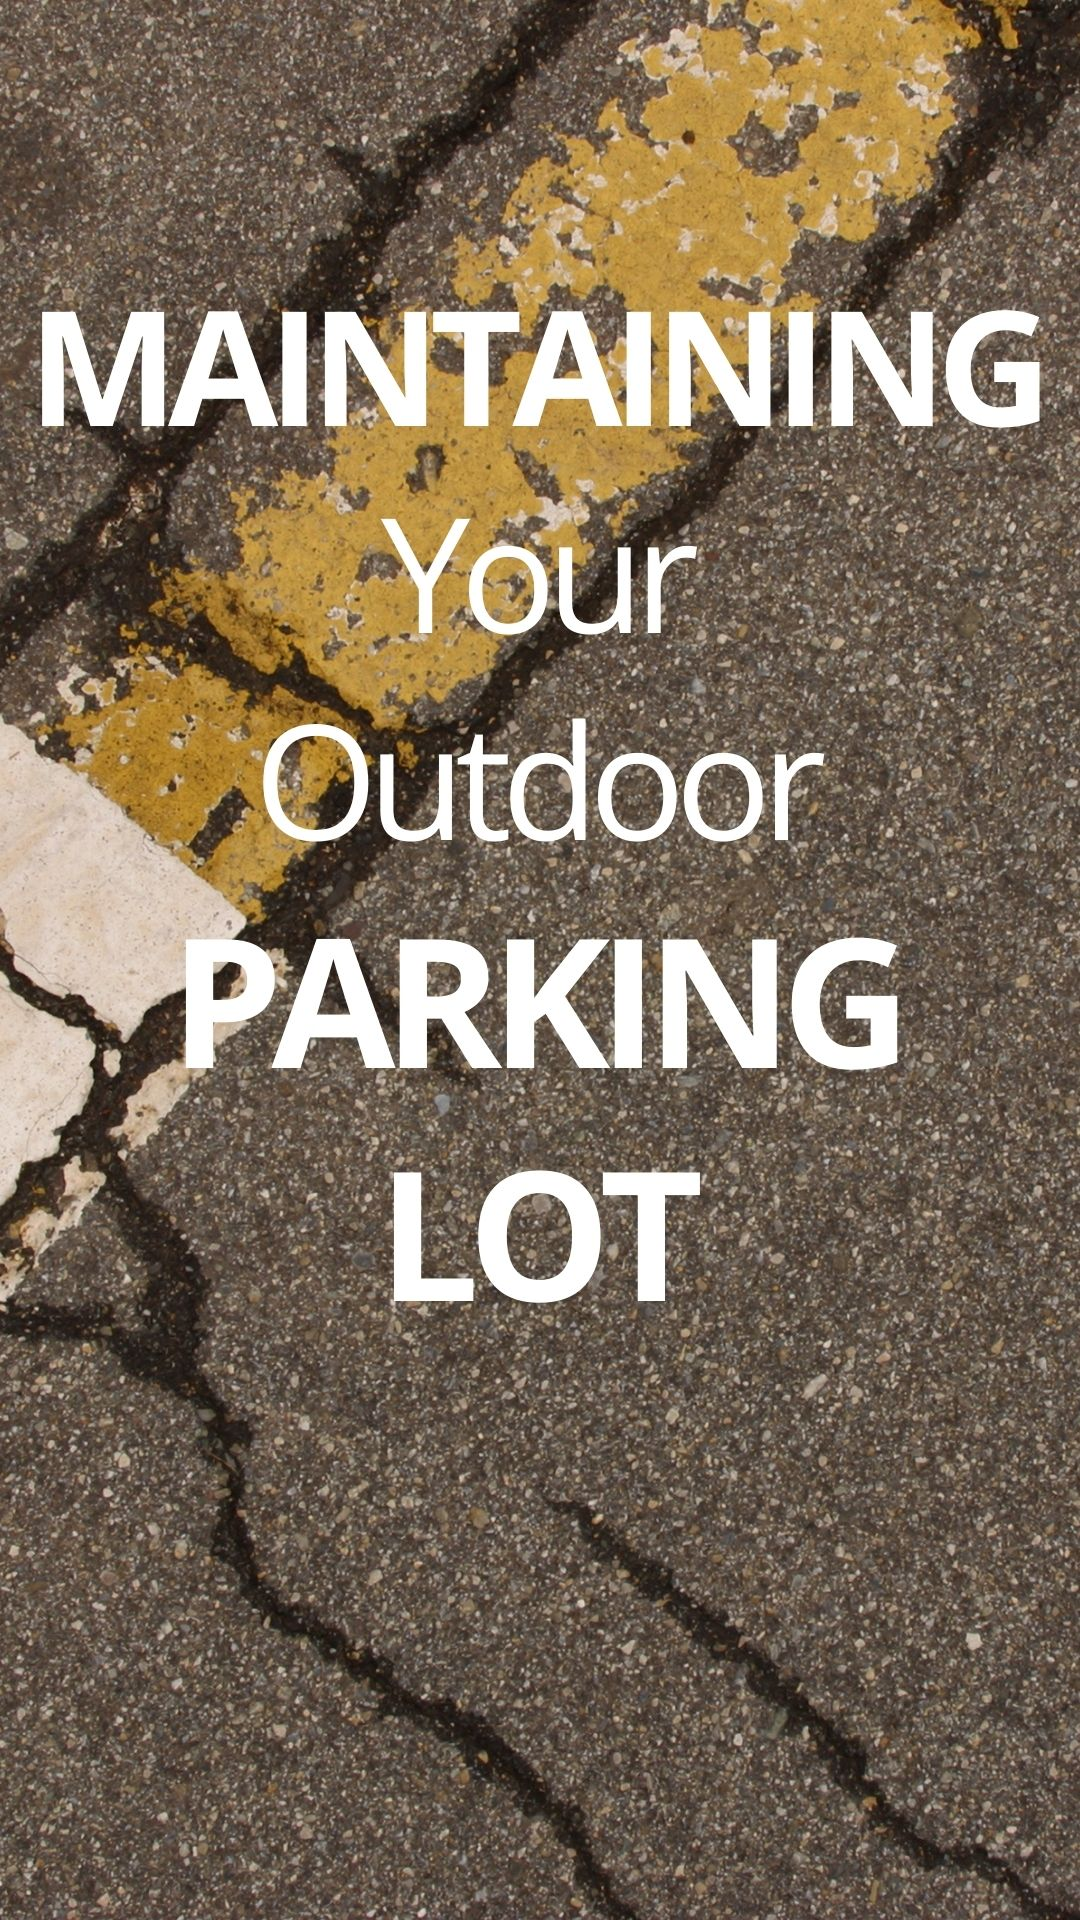 If you plan to start a parking lot business, here are five maintenance tips that may help you in the long run.